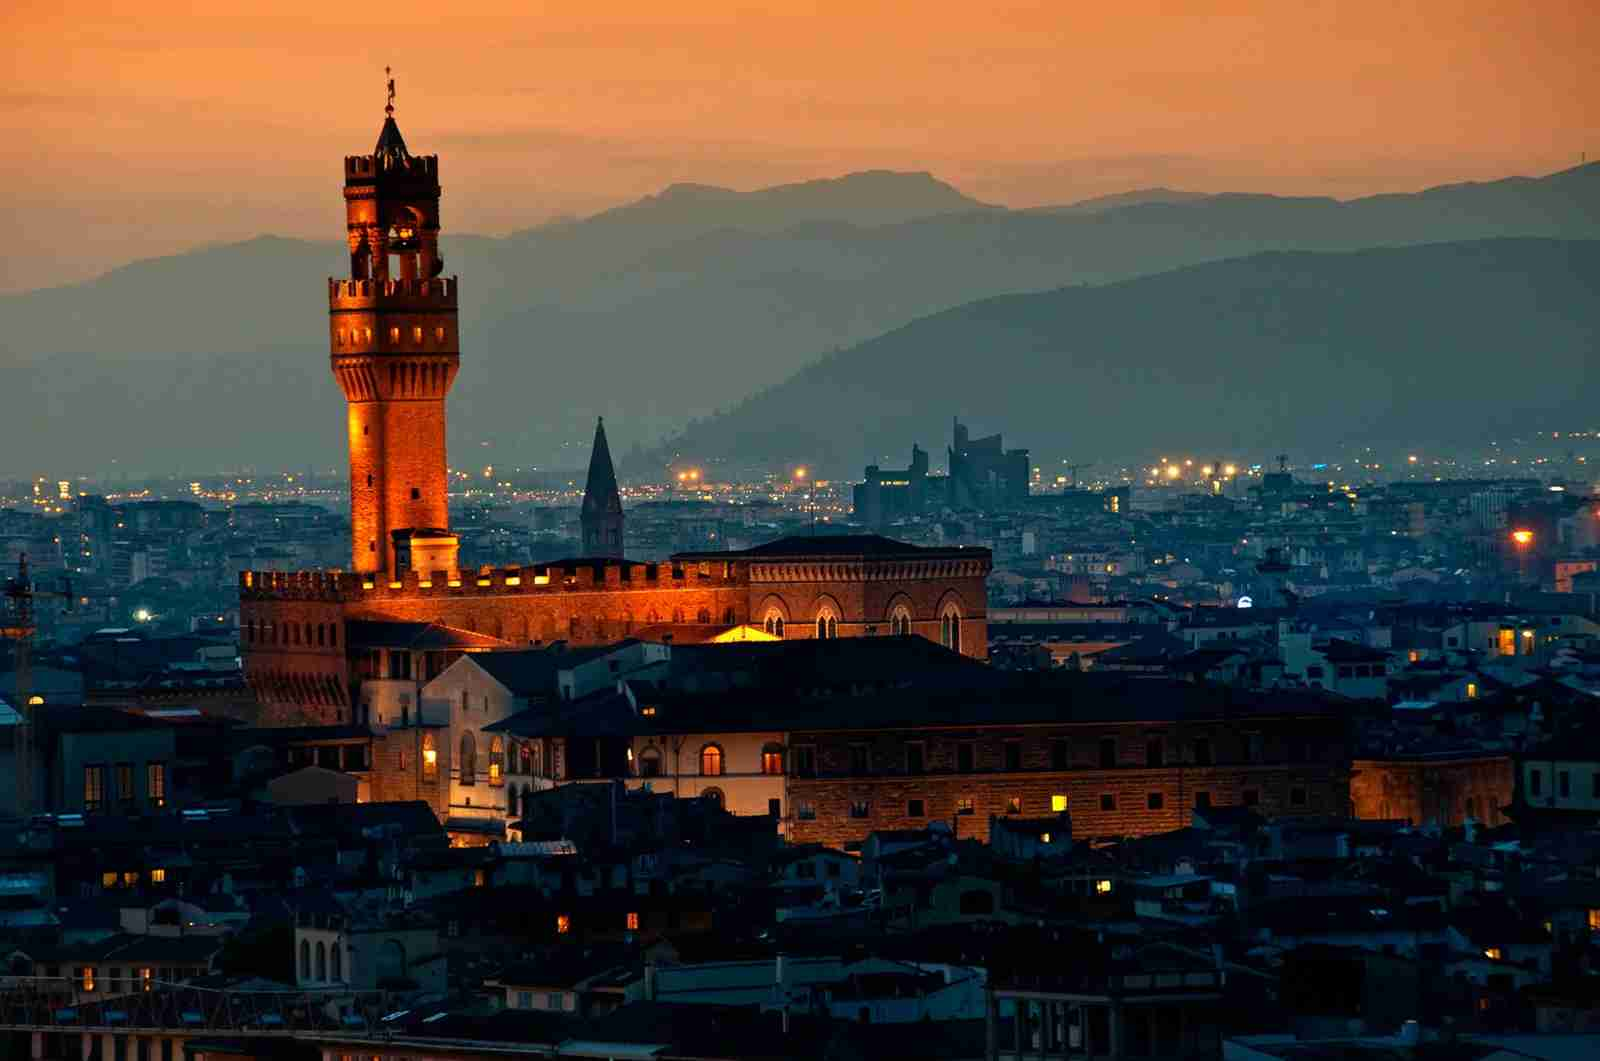 Palazzo Vecchio at dusk. (Photo by Photo Art by Mandy / Getty Images)